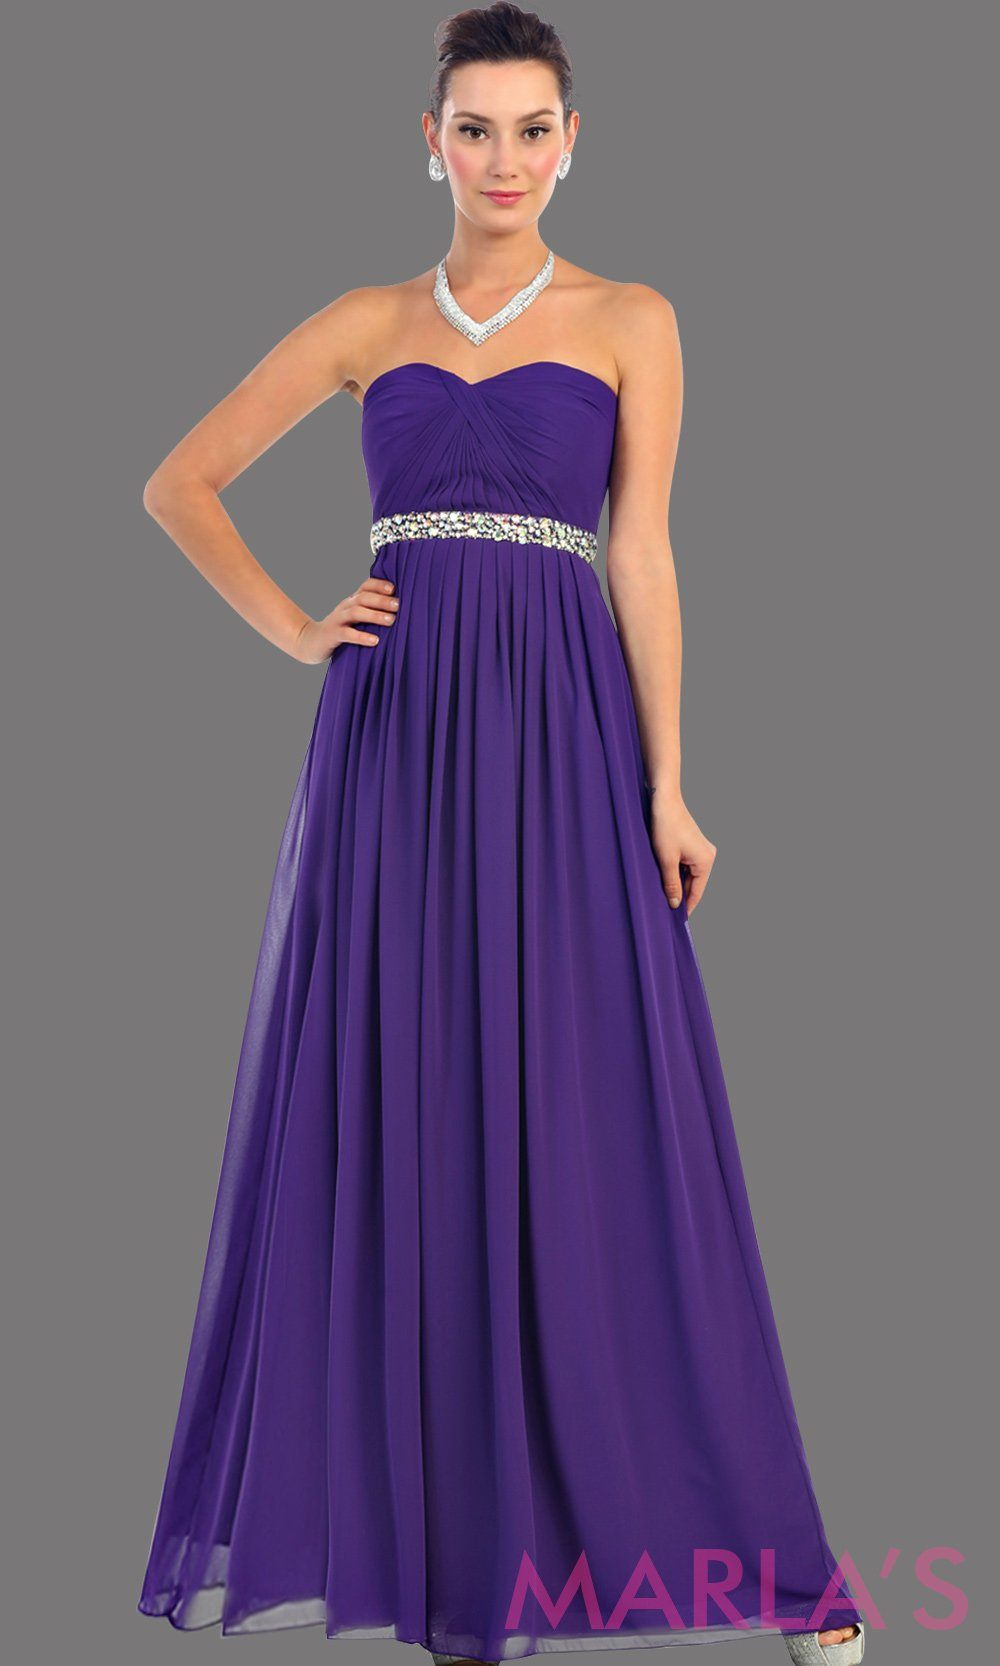 Long Purple flowy dress with corset back. It has a multicolor rhinestone belt under the bust. Perfect for bridesmaid dresses, simple prom dress, and wedding guest dress. This is available in plus sizes